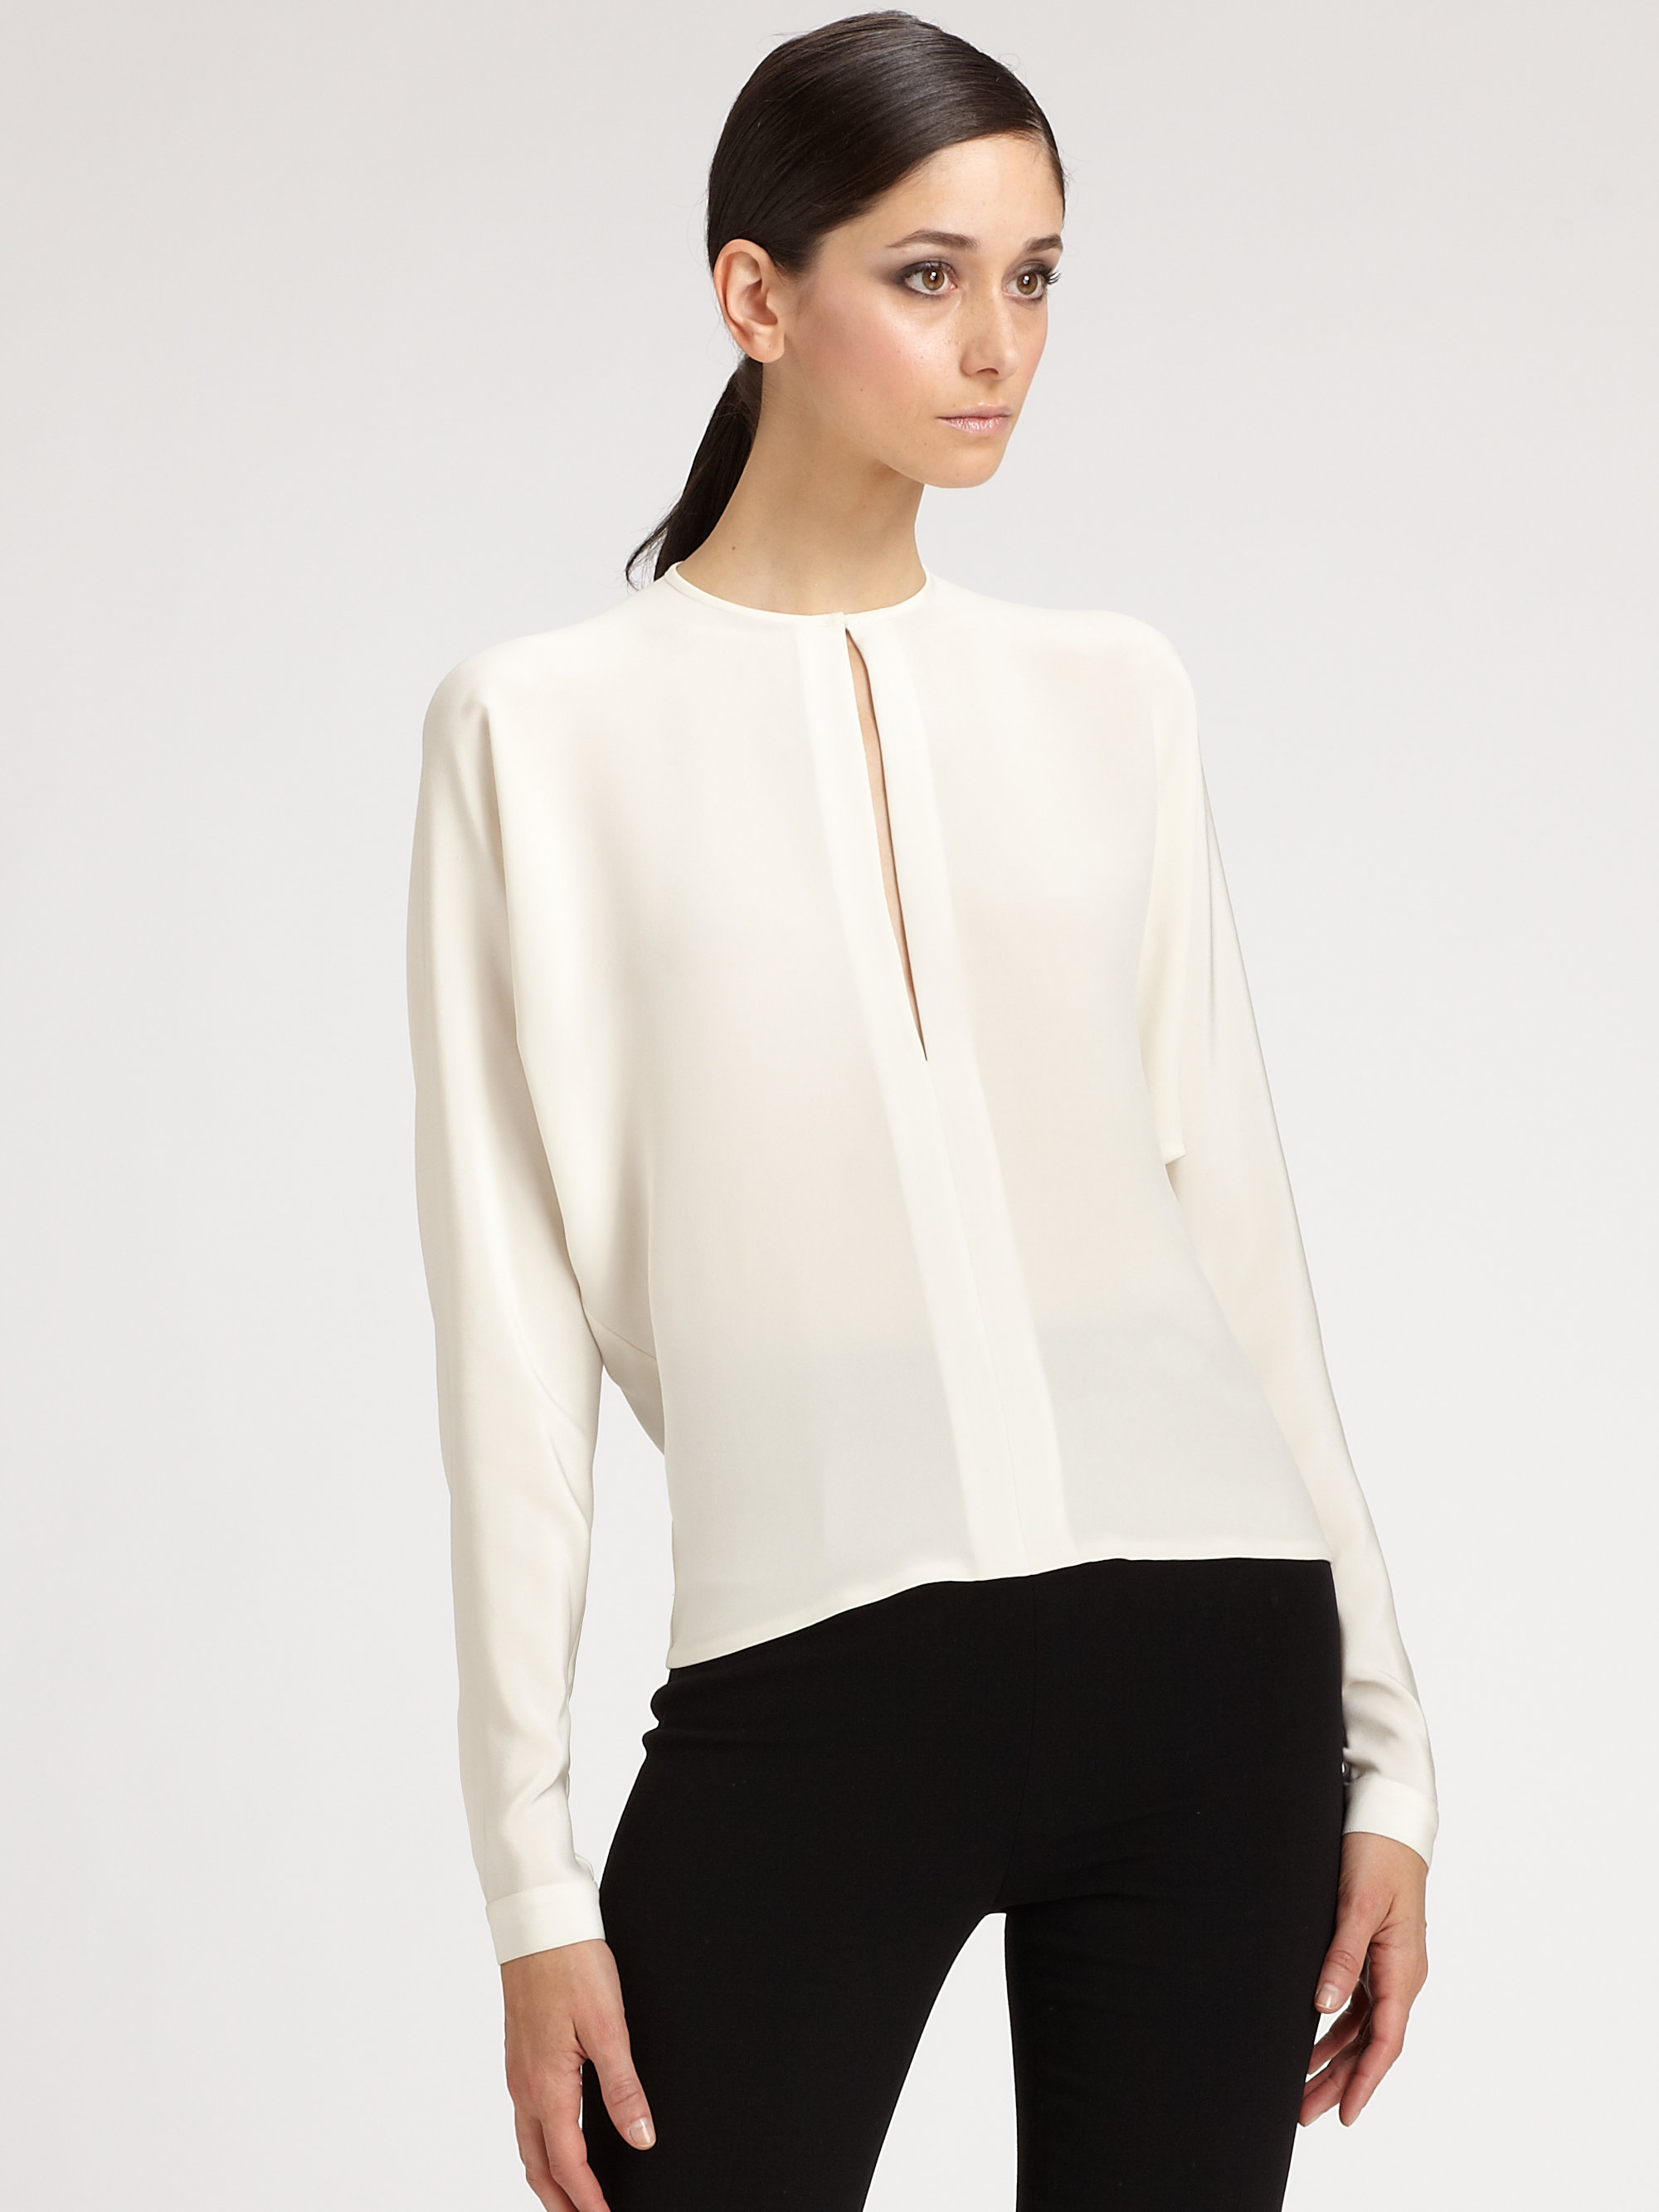 White Silk Blouse Photo Album - Reikian